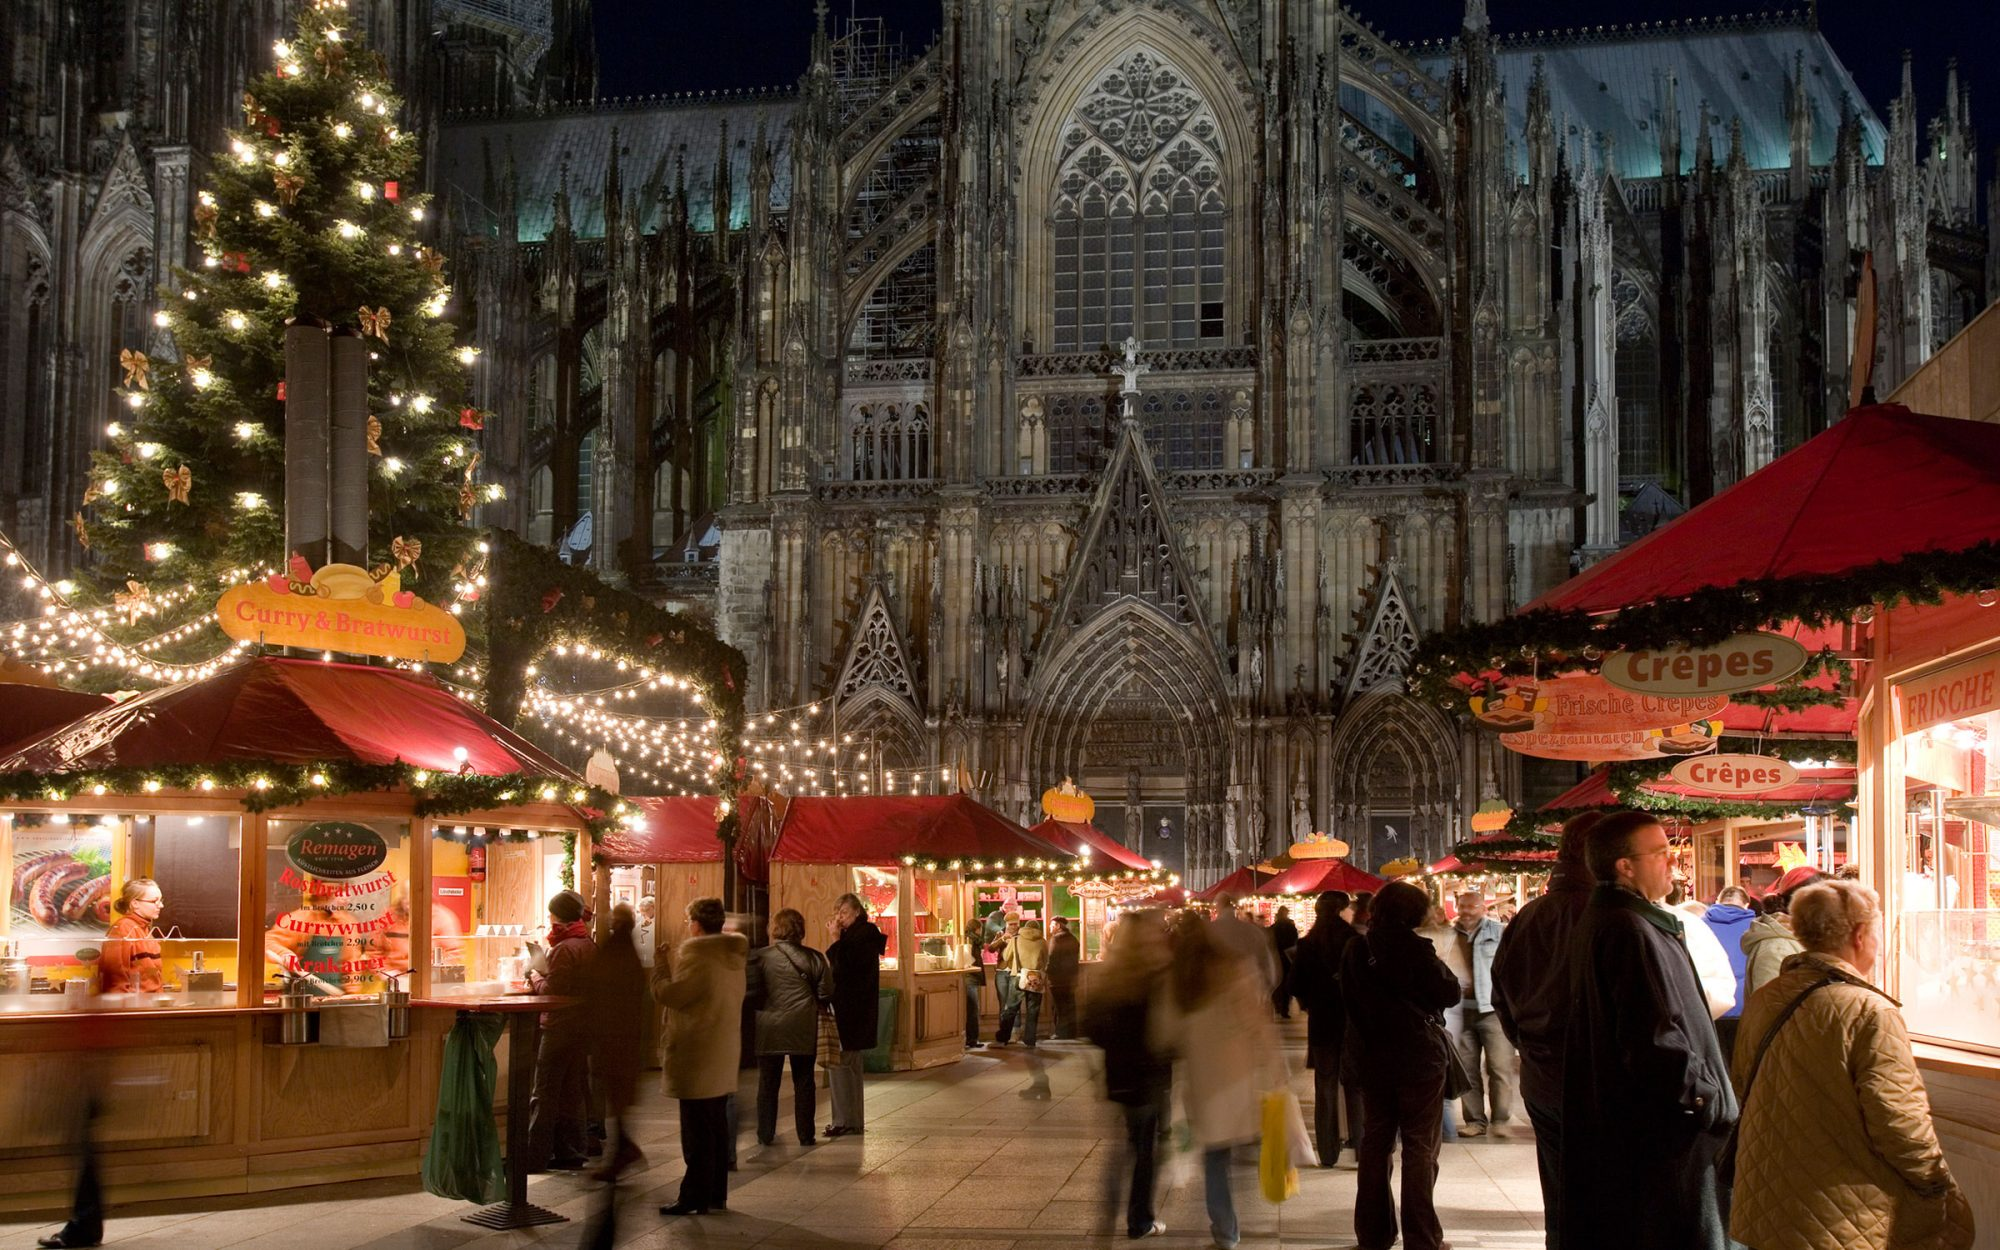 Christmas in Germany